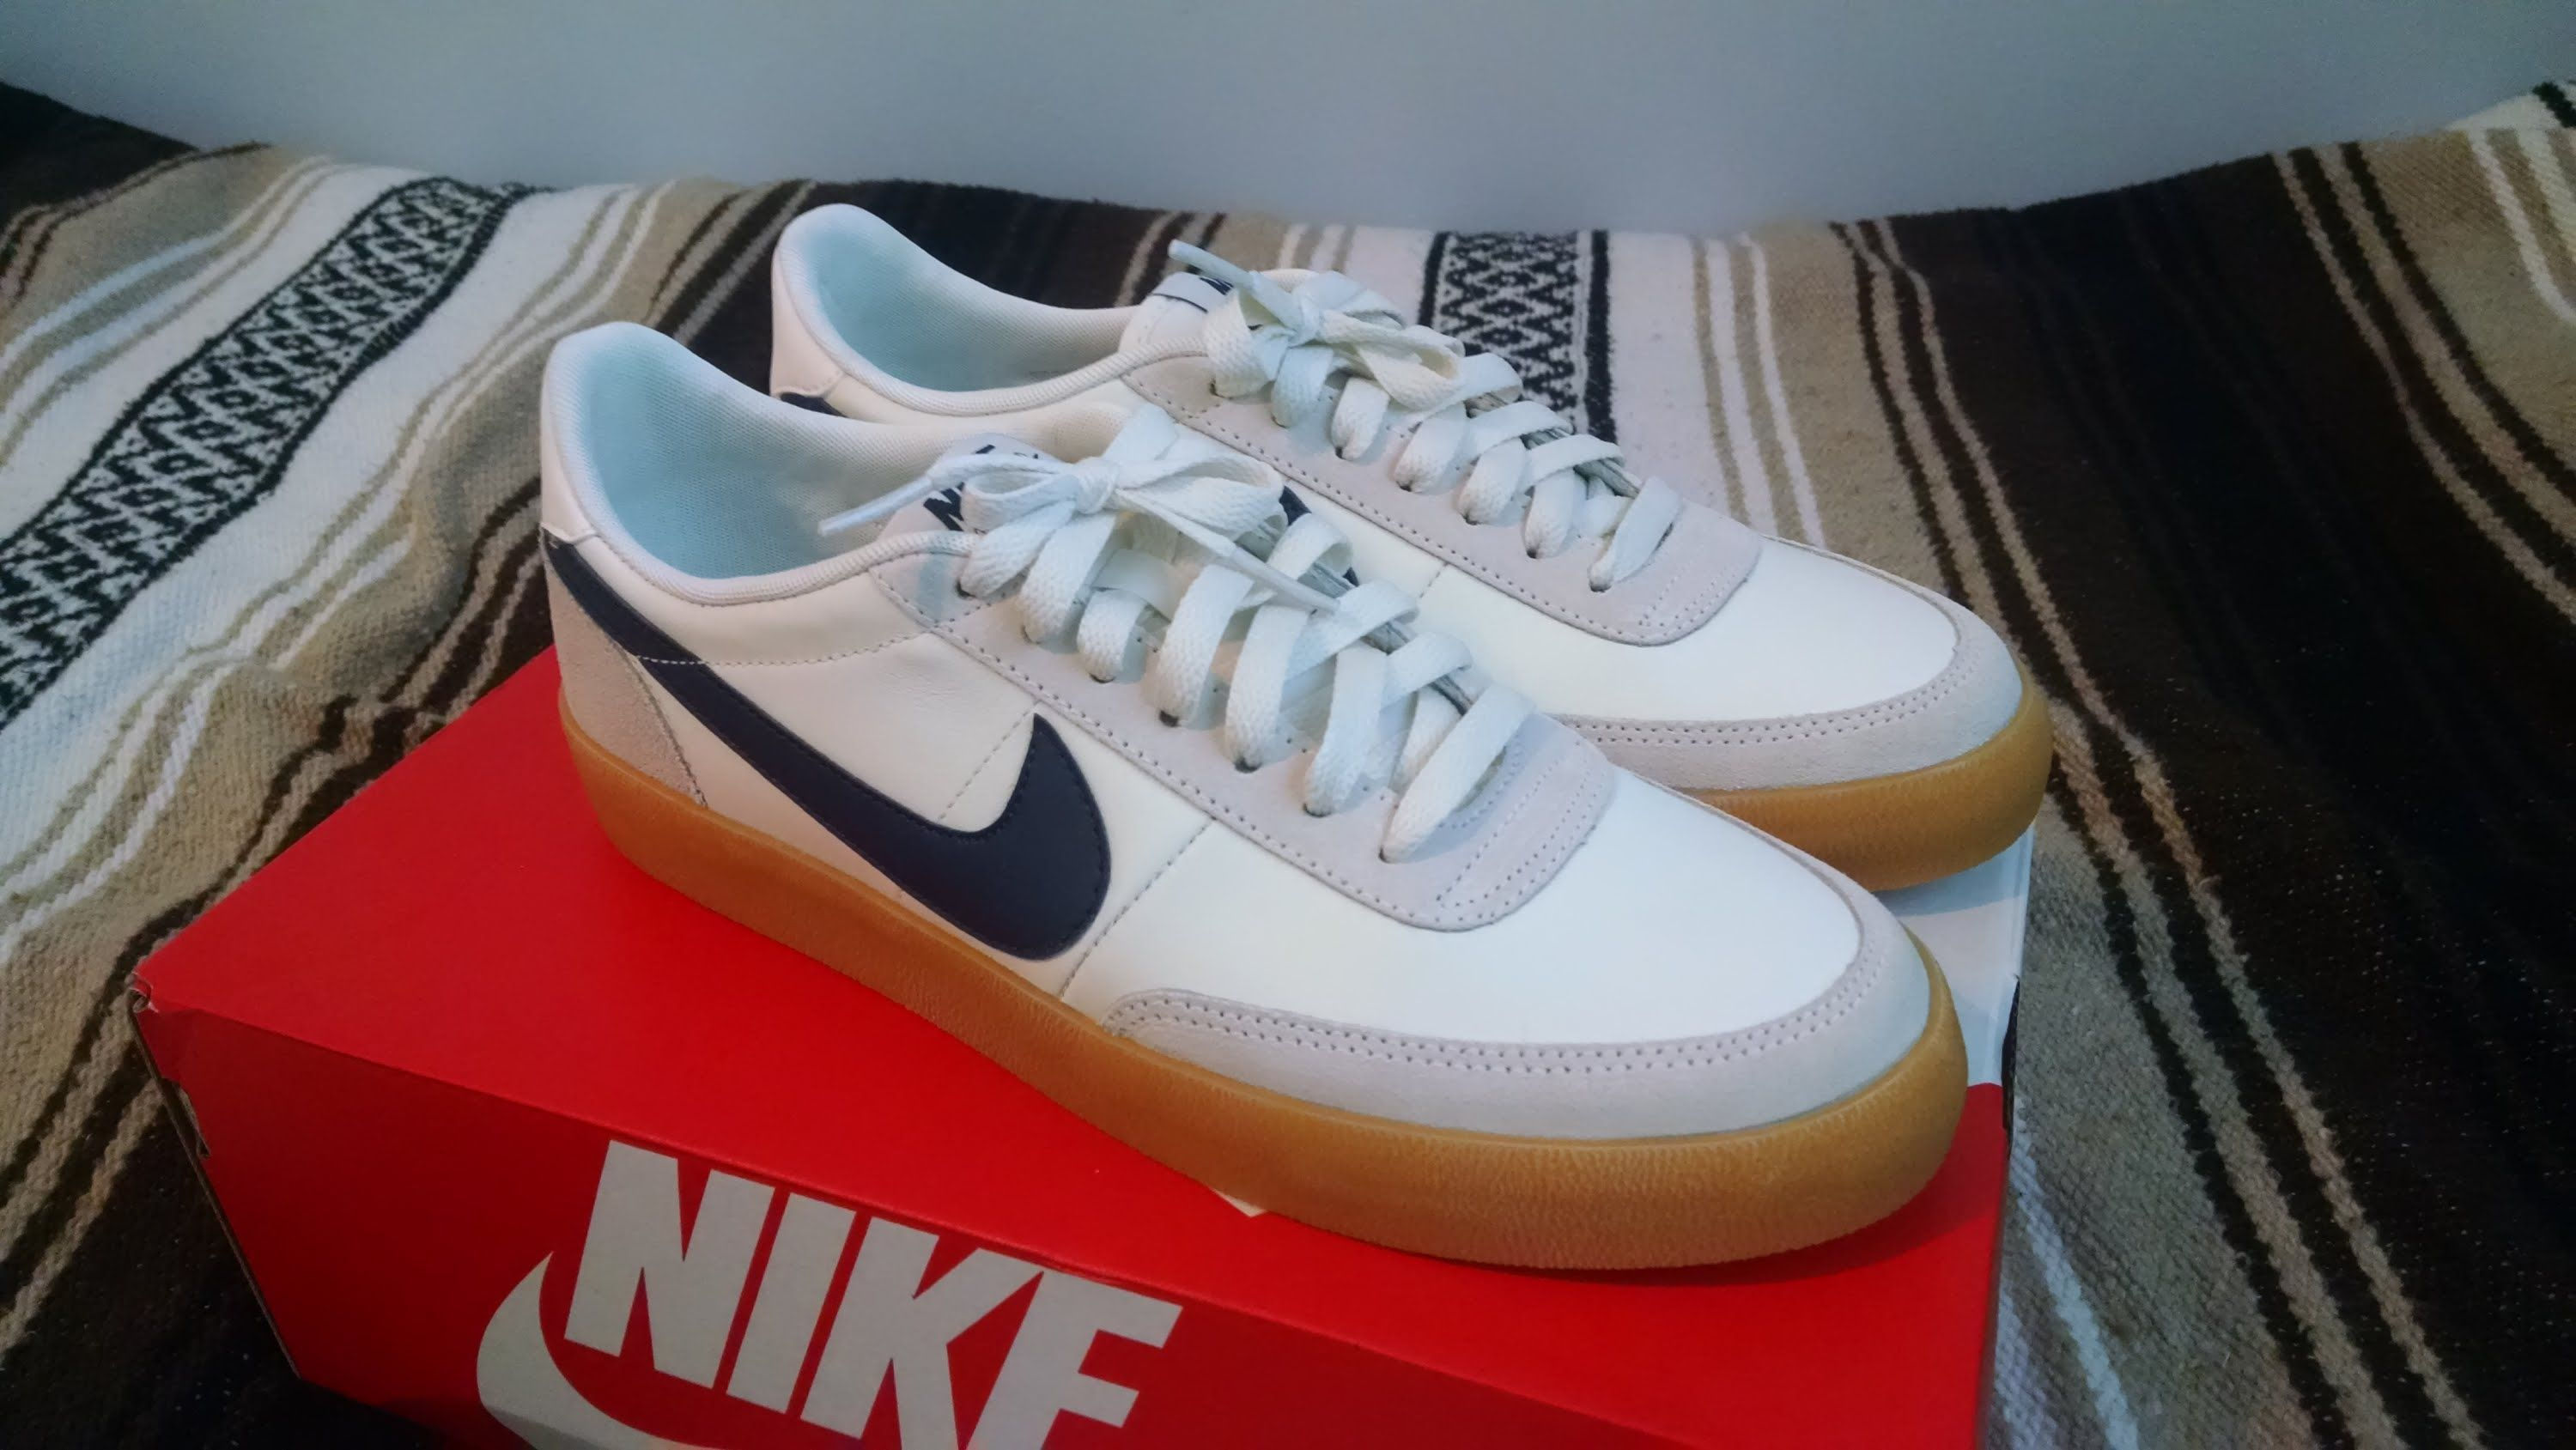 d0452e9844c7 Image result for white sneakers with gum soles